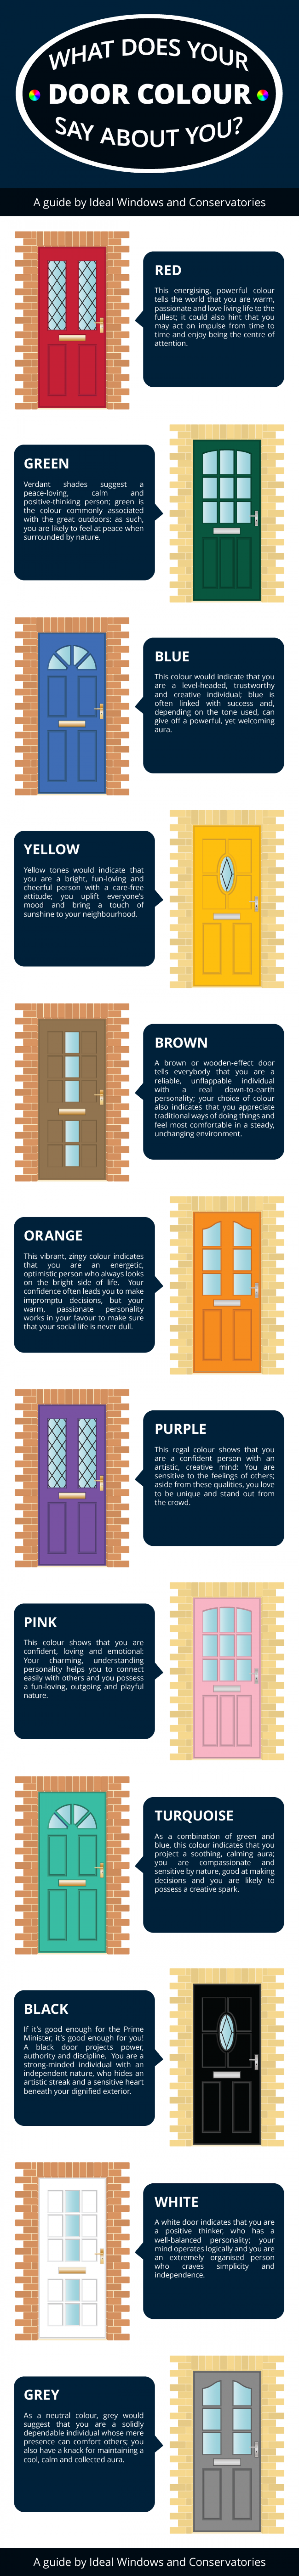 What does your door colour say about you? Infographic